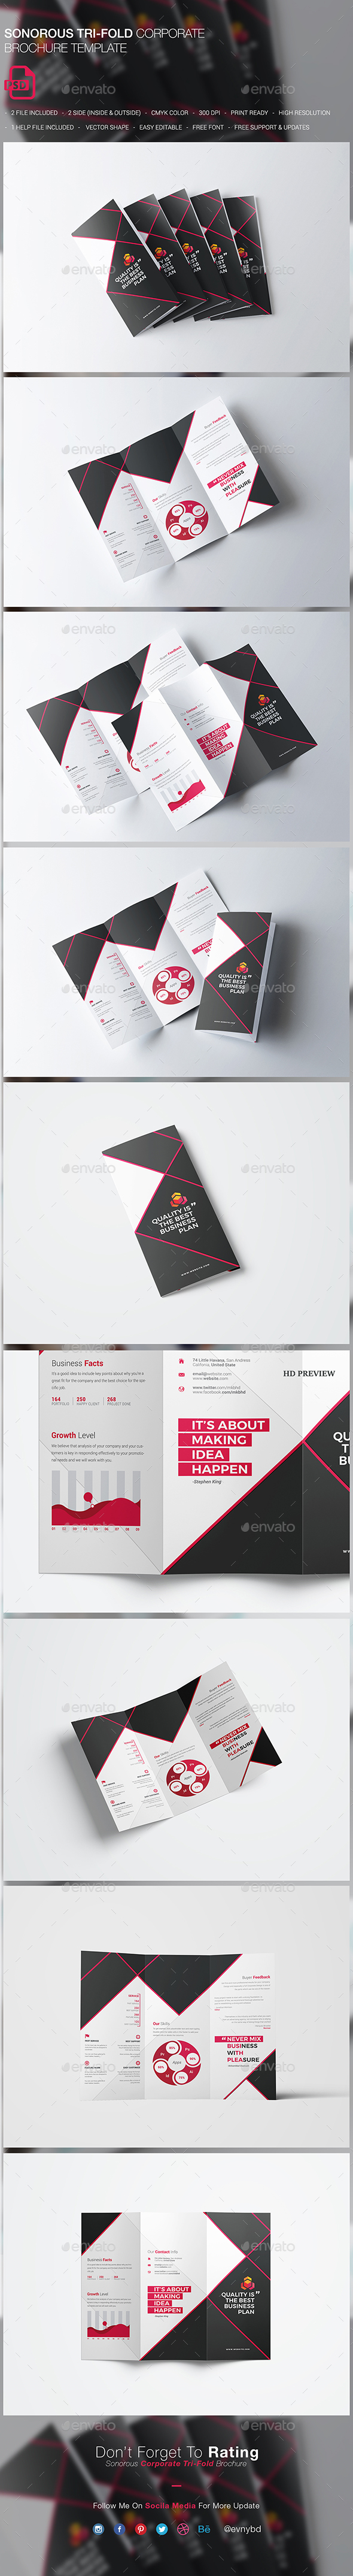 Sonorous Corporate Tri-fold Brochure - Brochures Print Templates